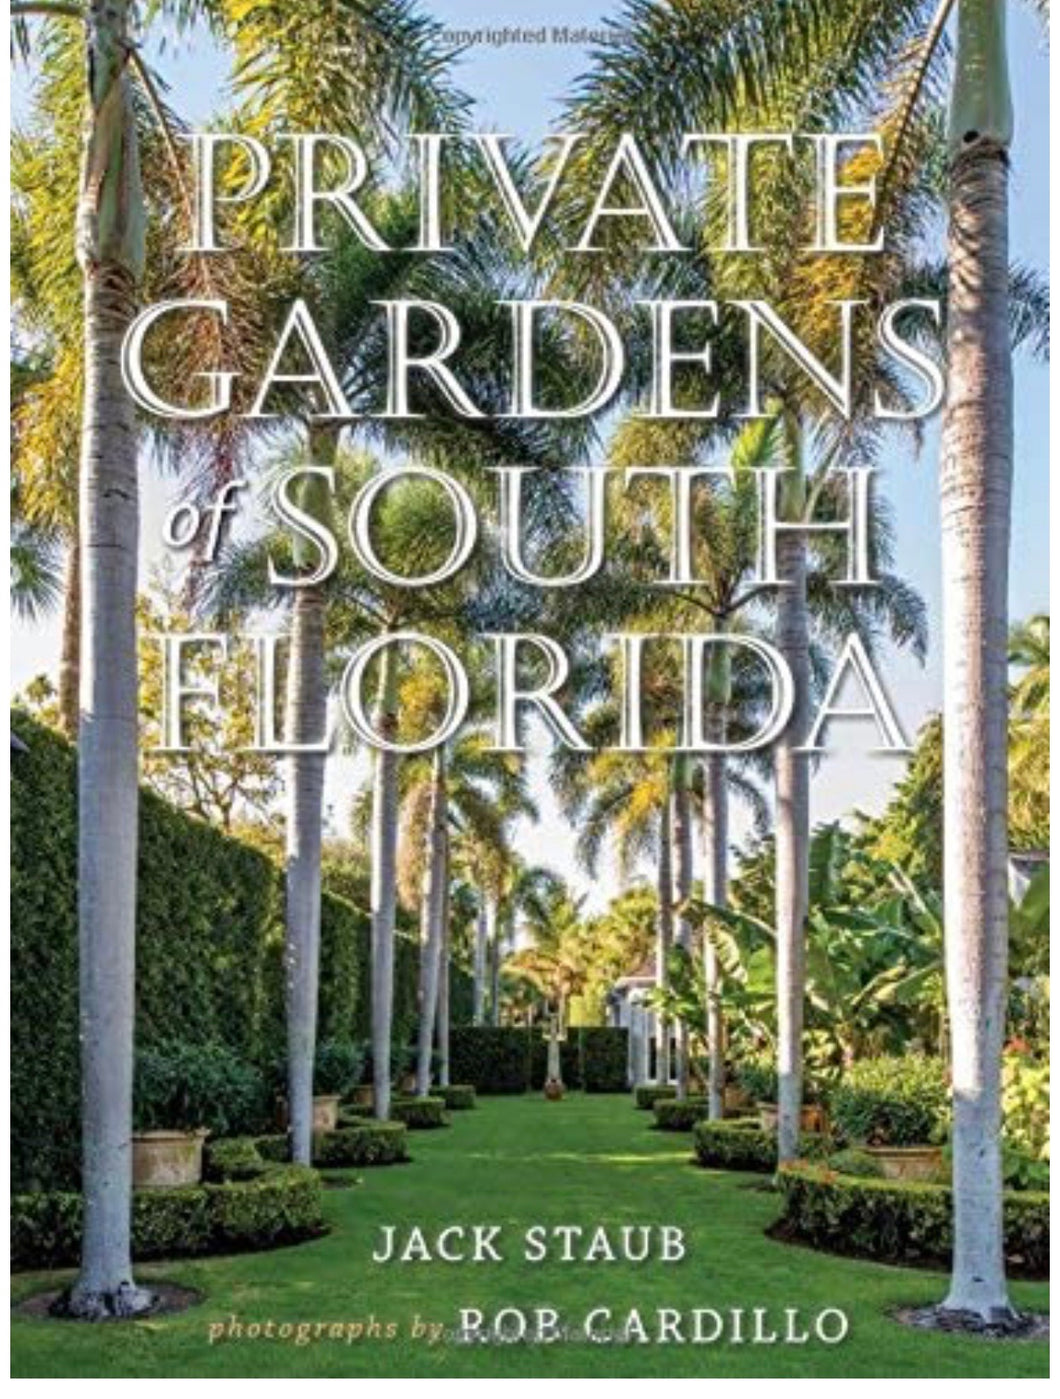 Private Gardens of South Florida